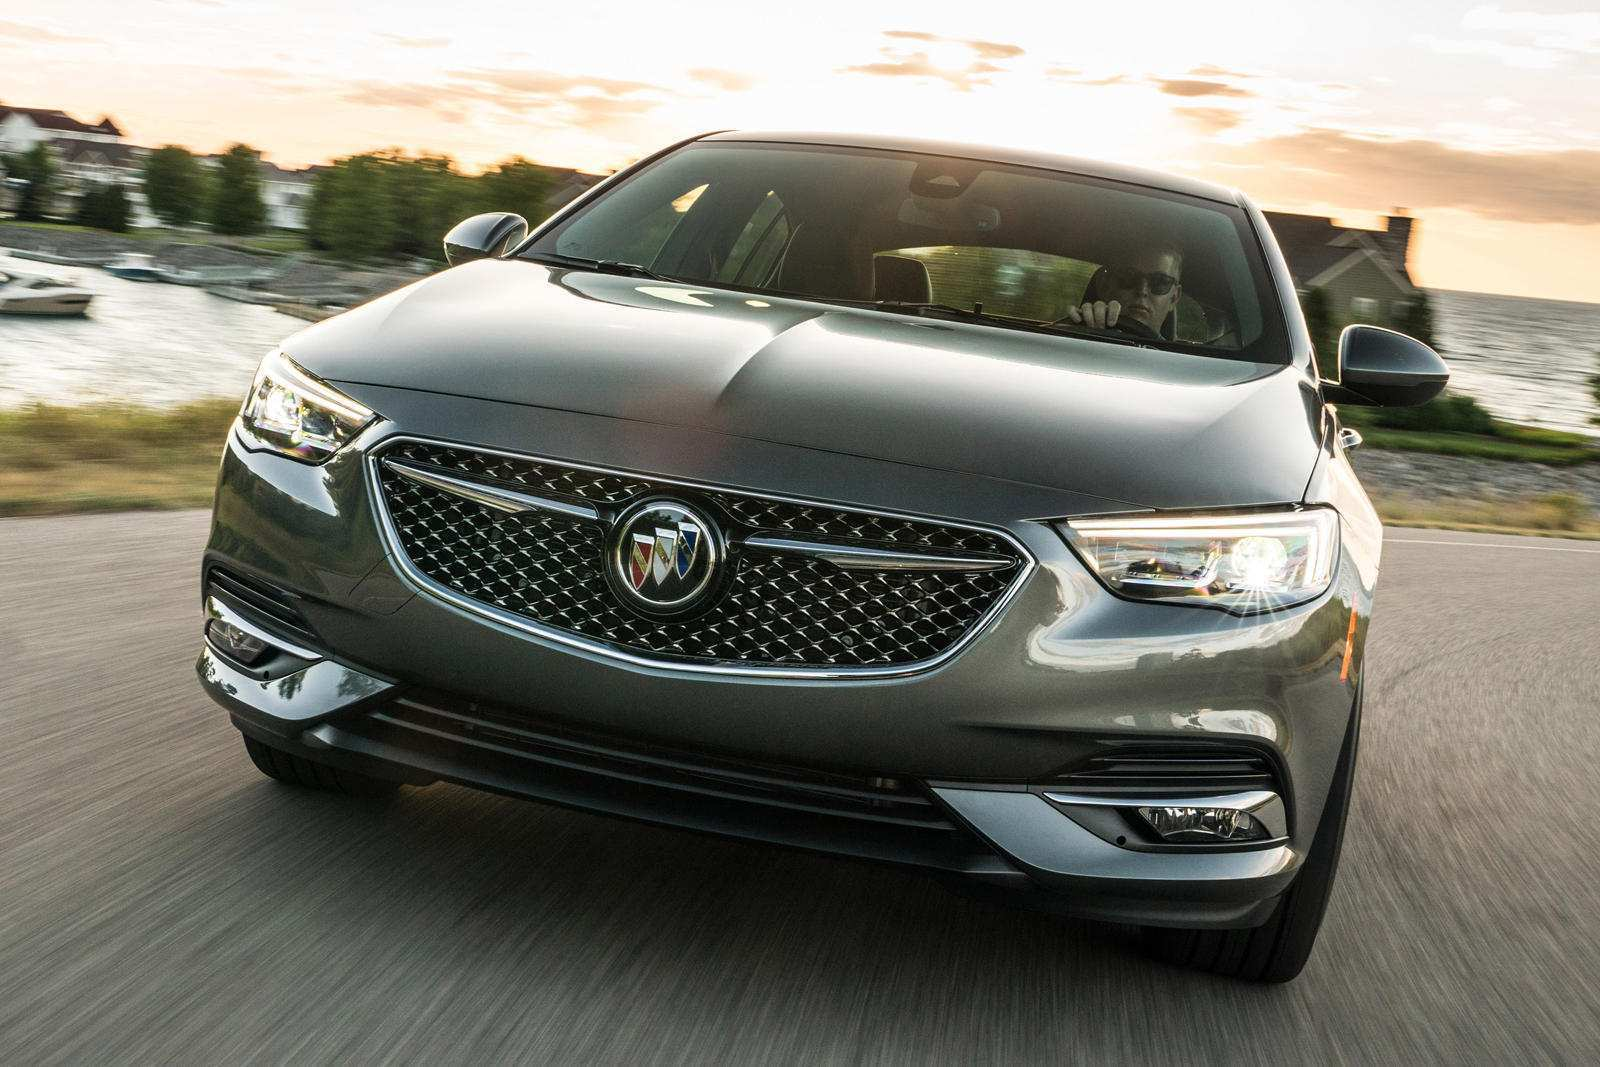 31 Gallery of Buick To Add Regal Sportback Avenir For 2019 Concept Redesign And Review Research New for Buick To Add Regal Sportback Avenir For 2019 Concept Redesign And Review